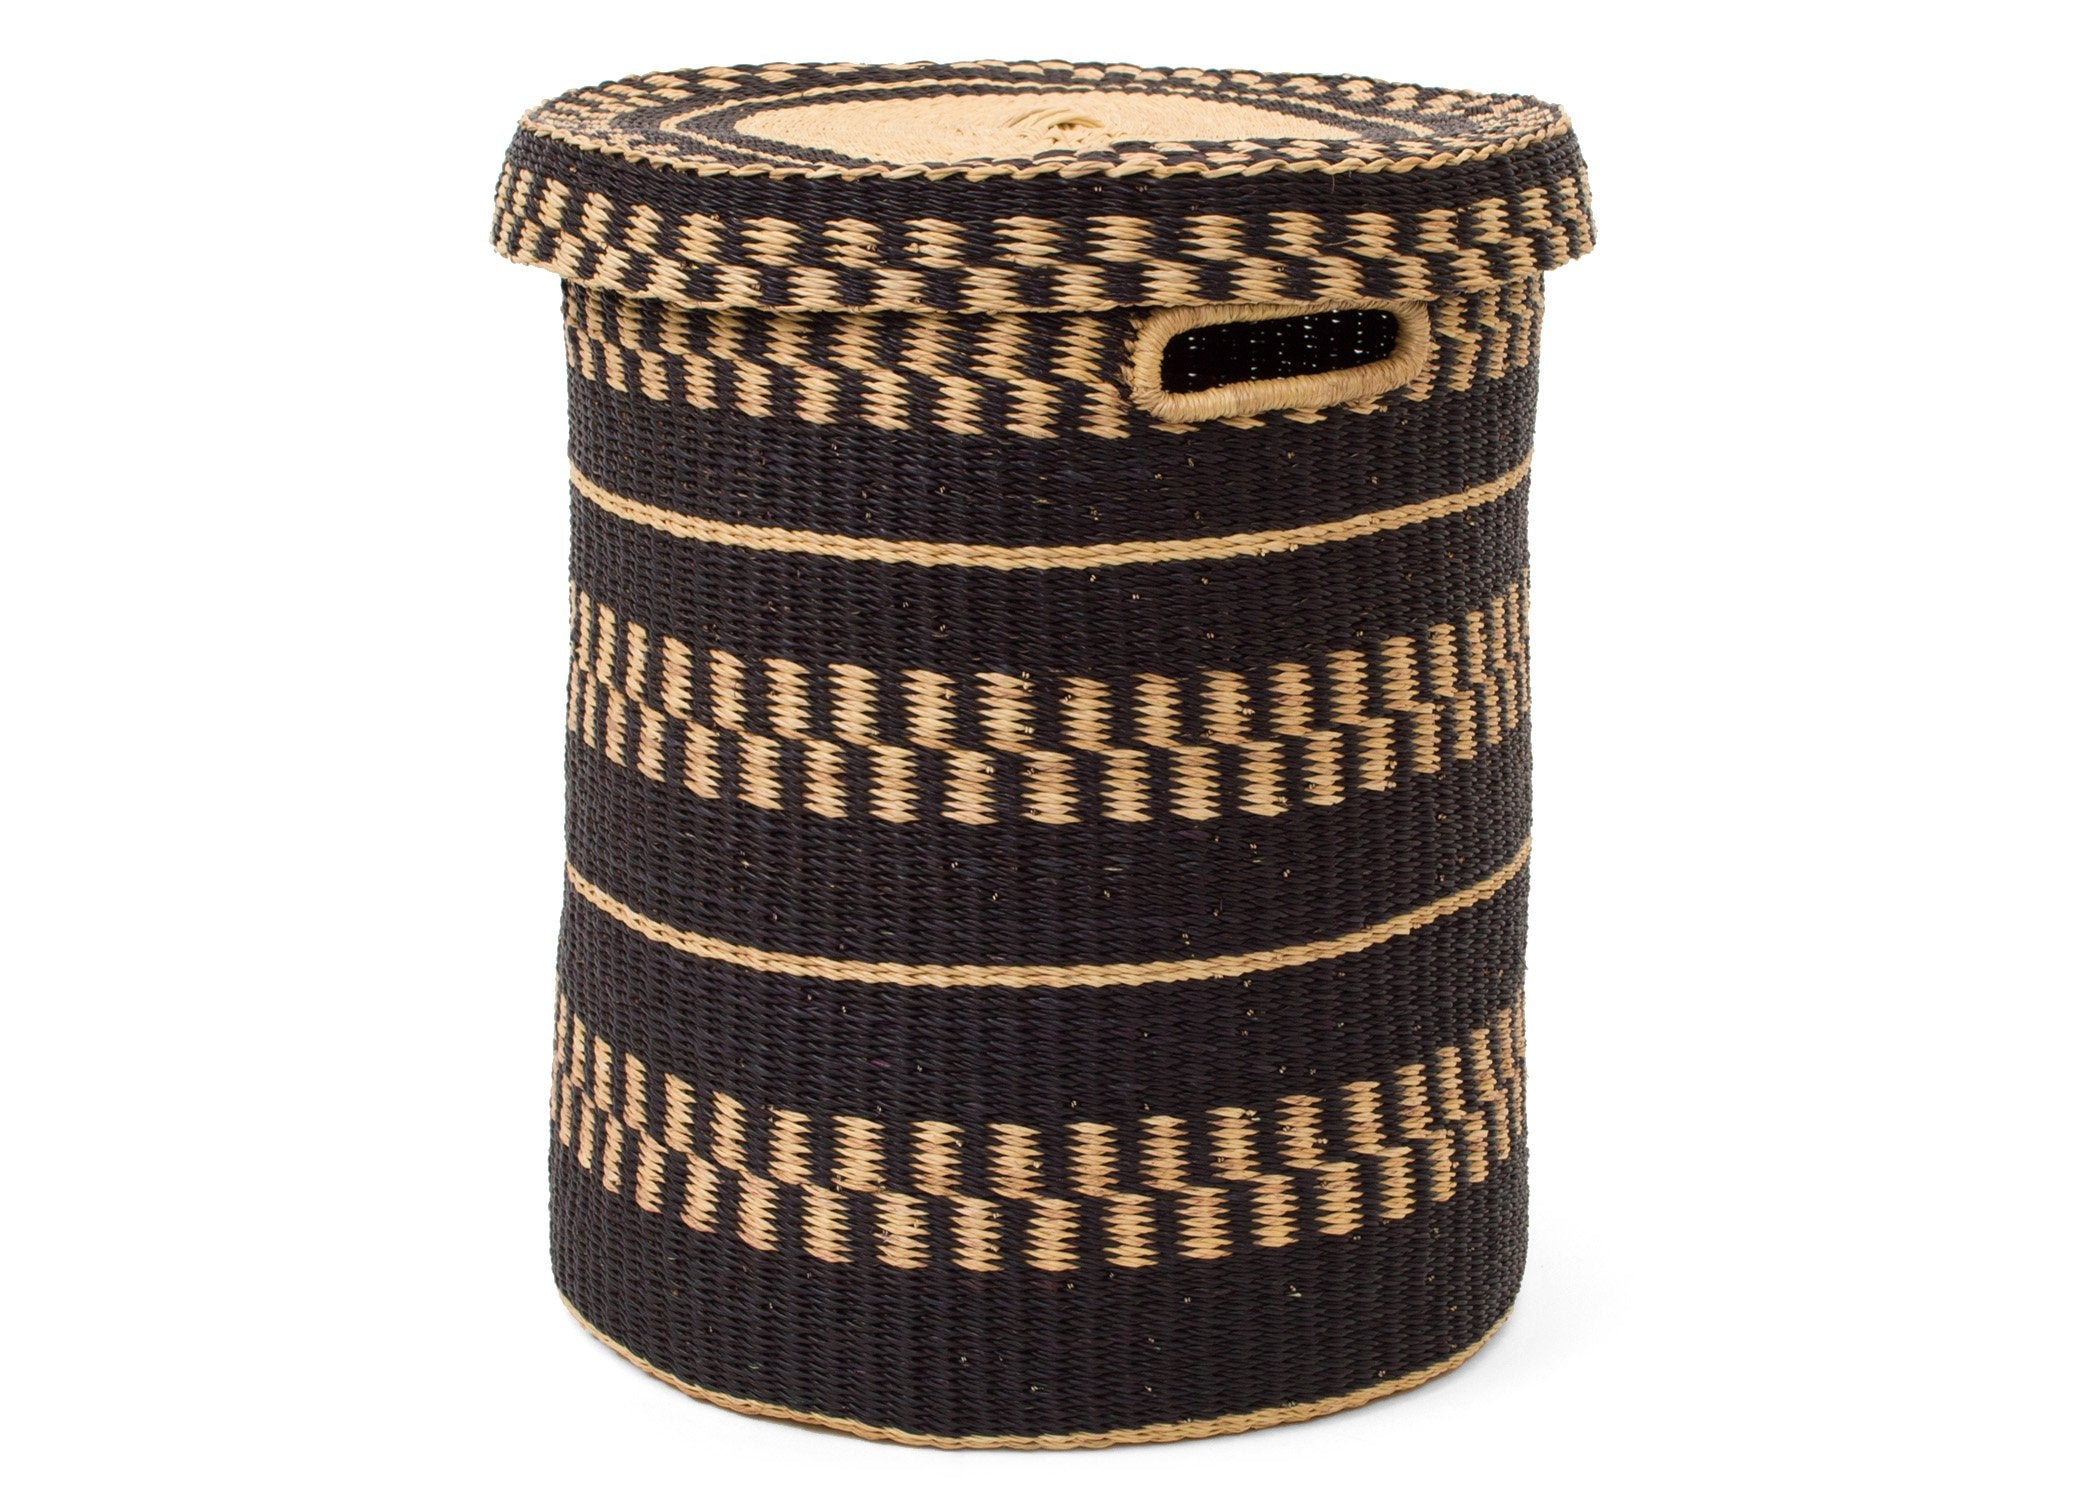 Black Patterned Grass Hamper